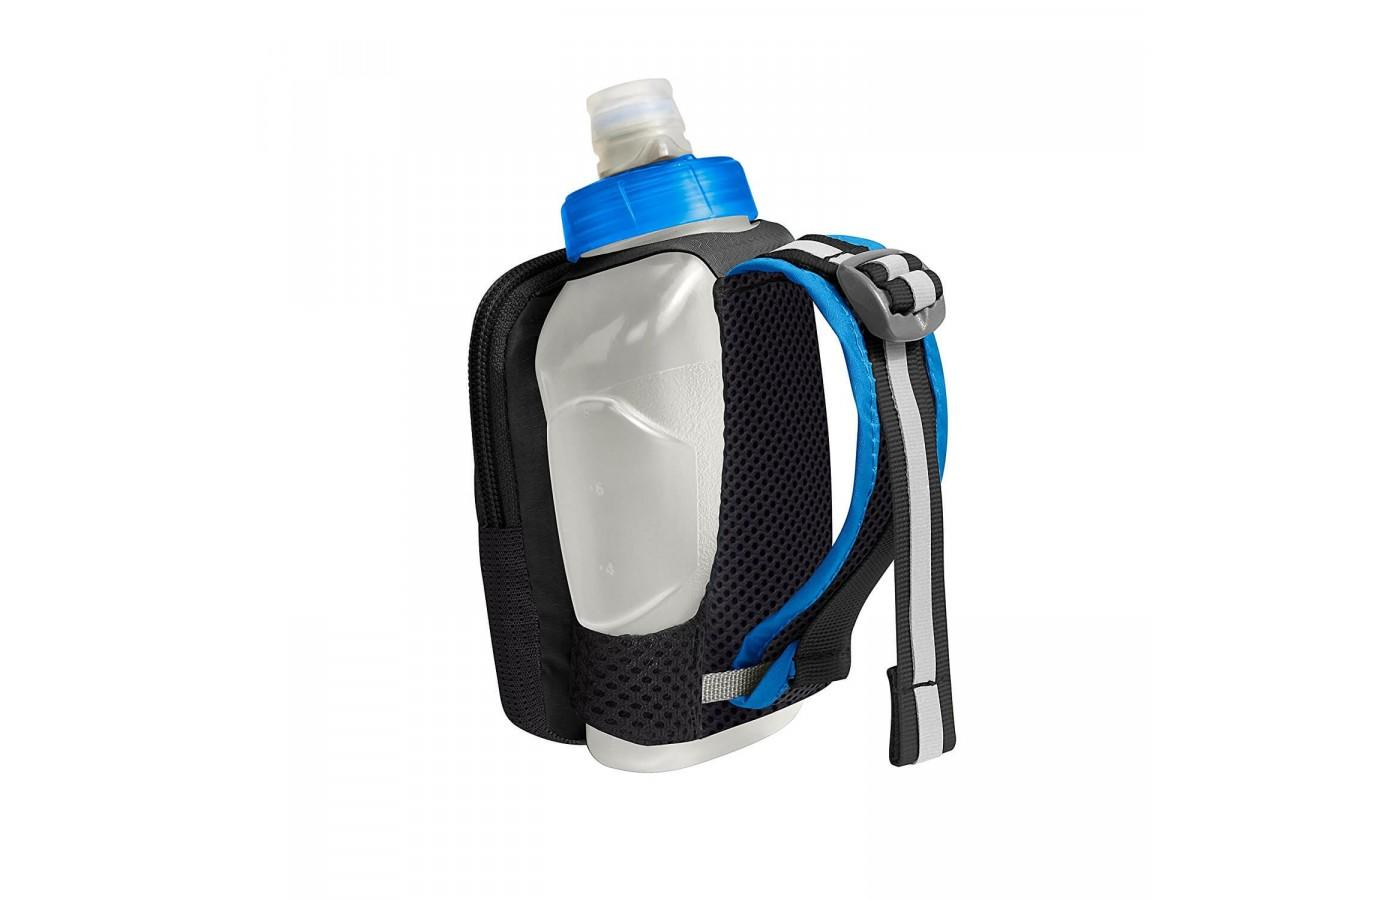 The Camelbak Arc Quick Grip Handheld Water Bottle's hand strap is adjustable